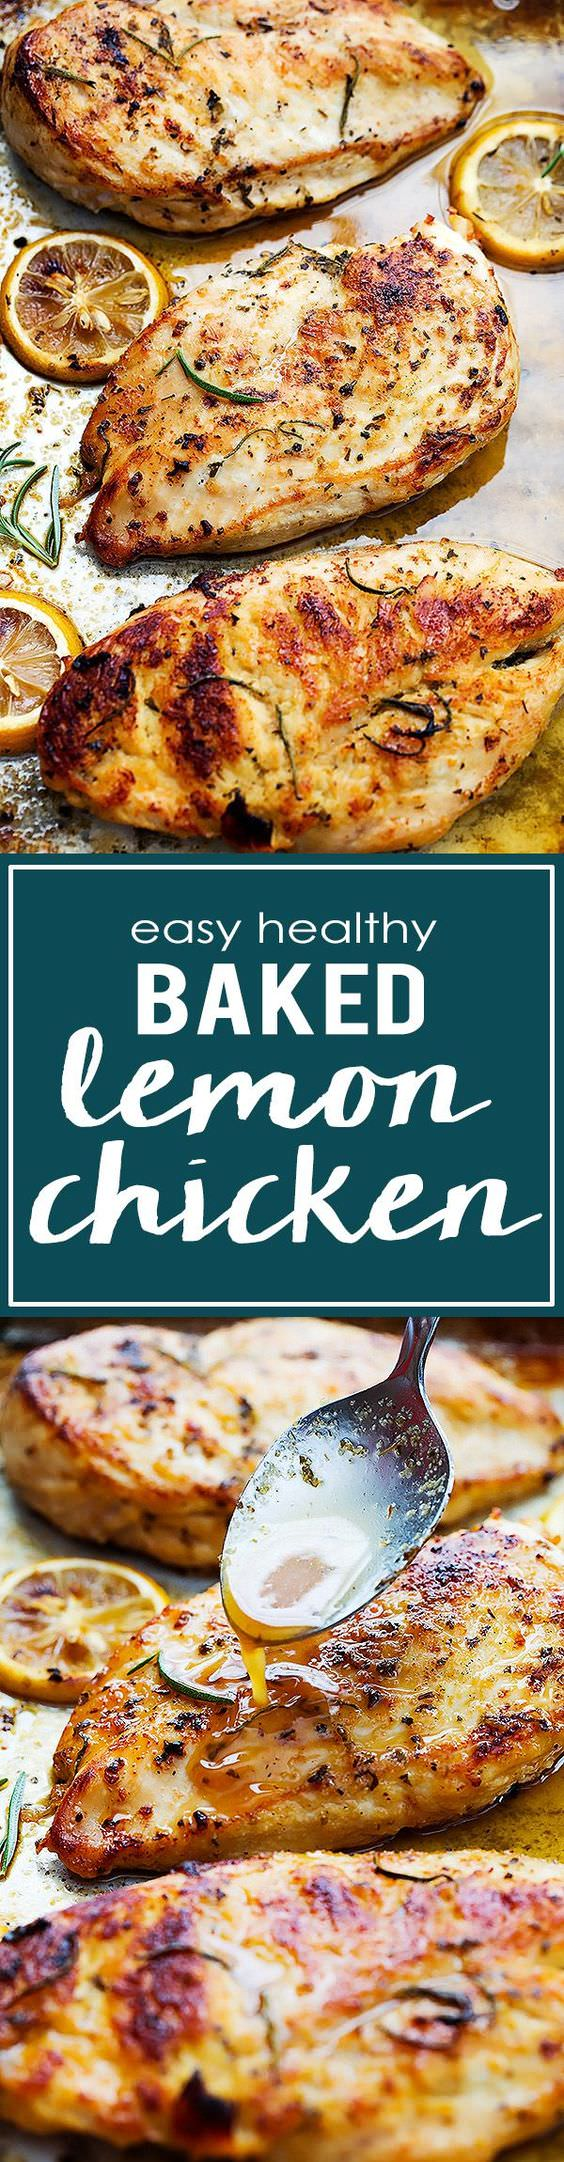 This baked lemon chicken is yummy and healthy. Easy to prepare that you can make it with just a few ingredients. Check out!